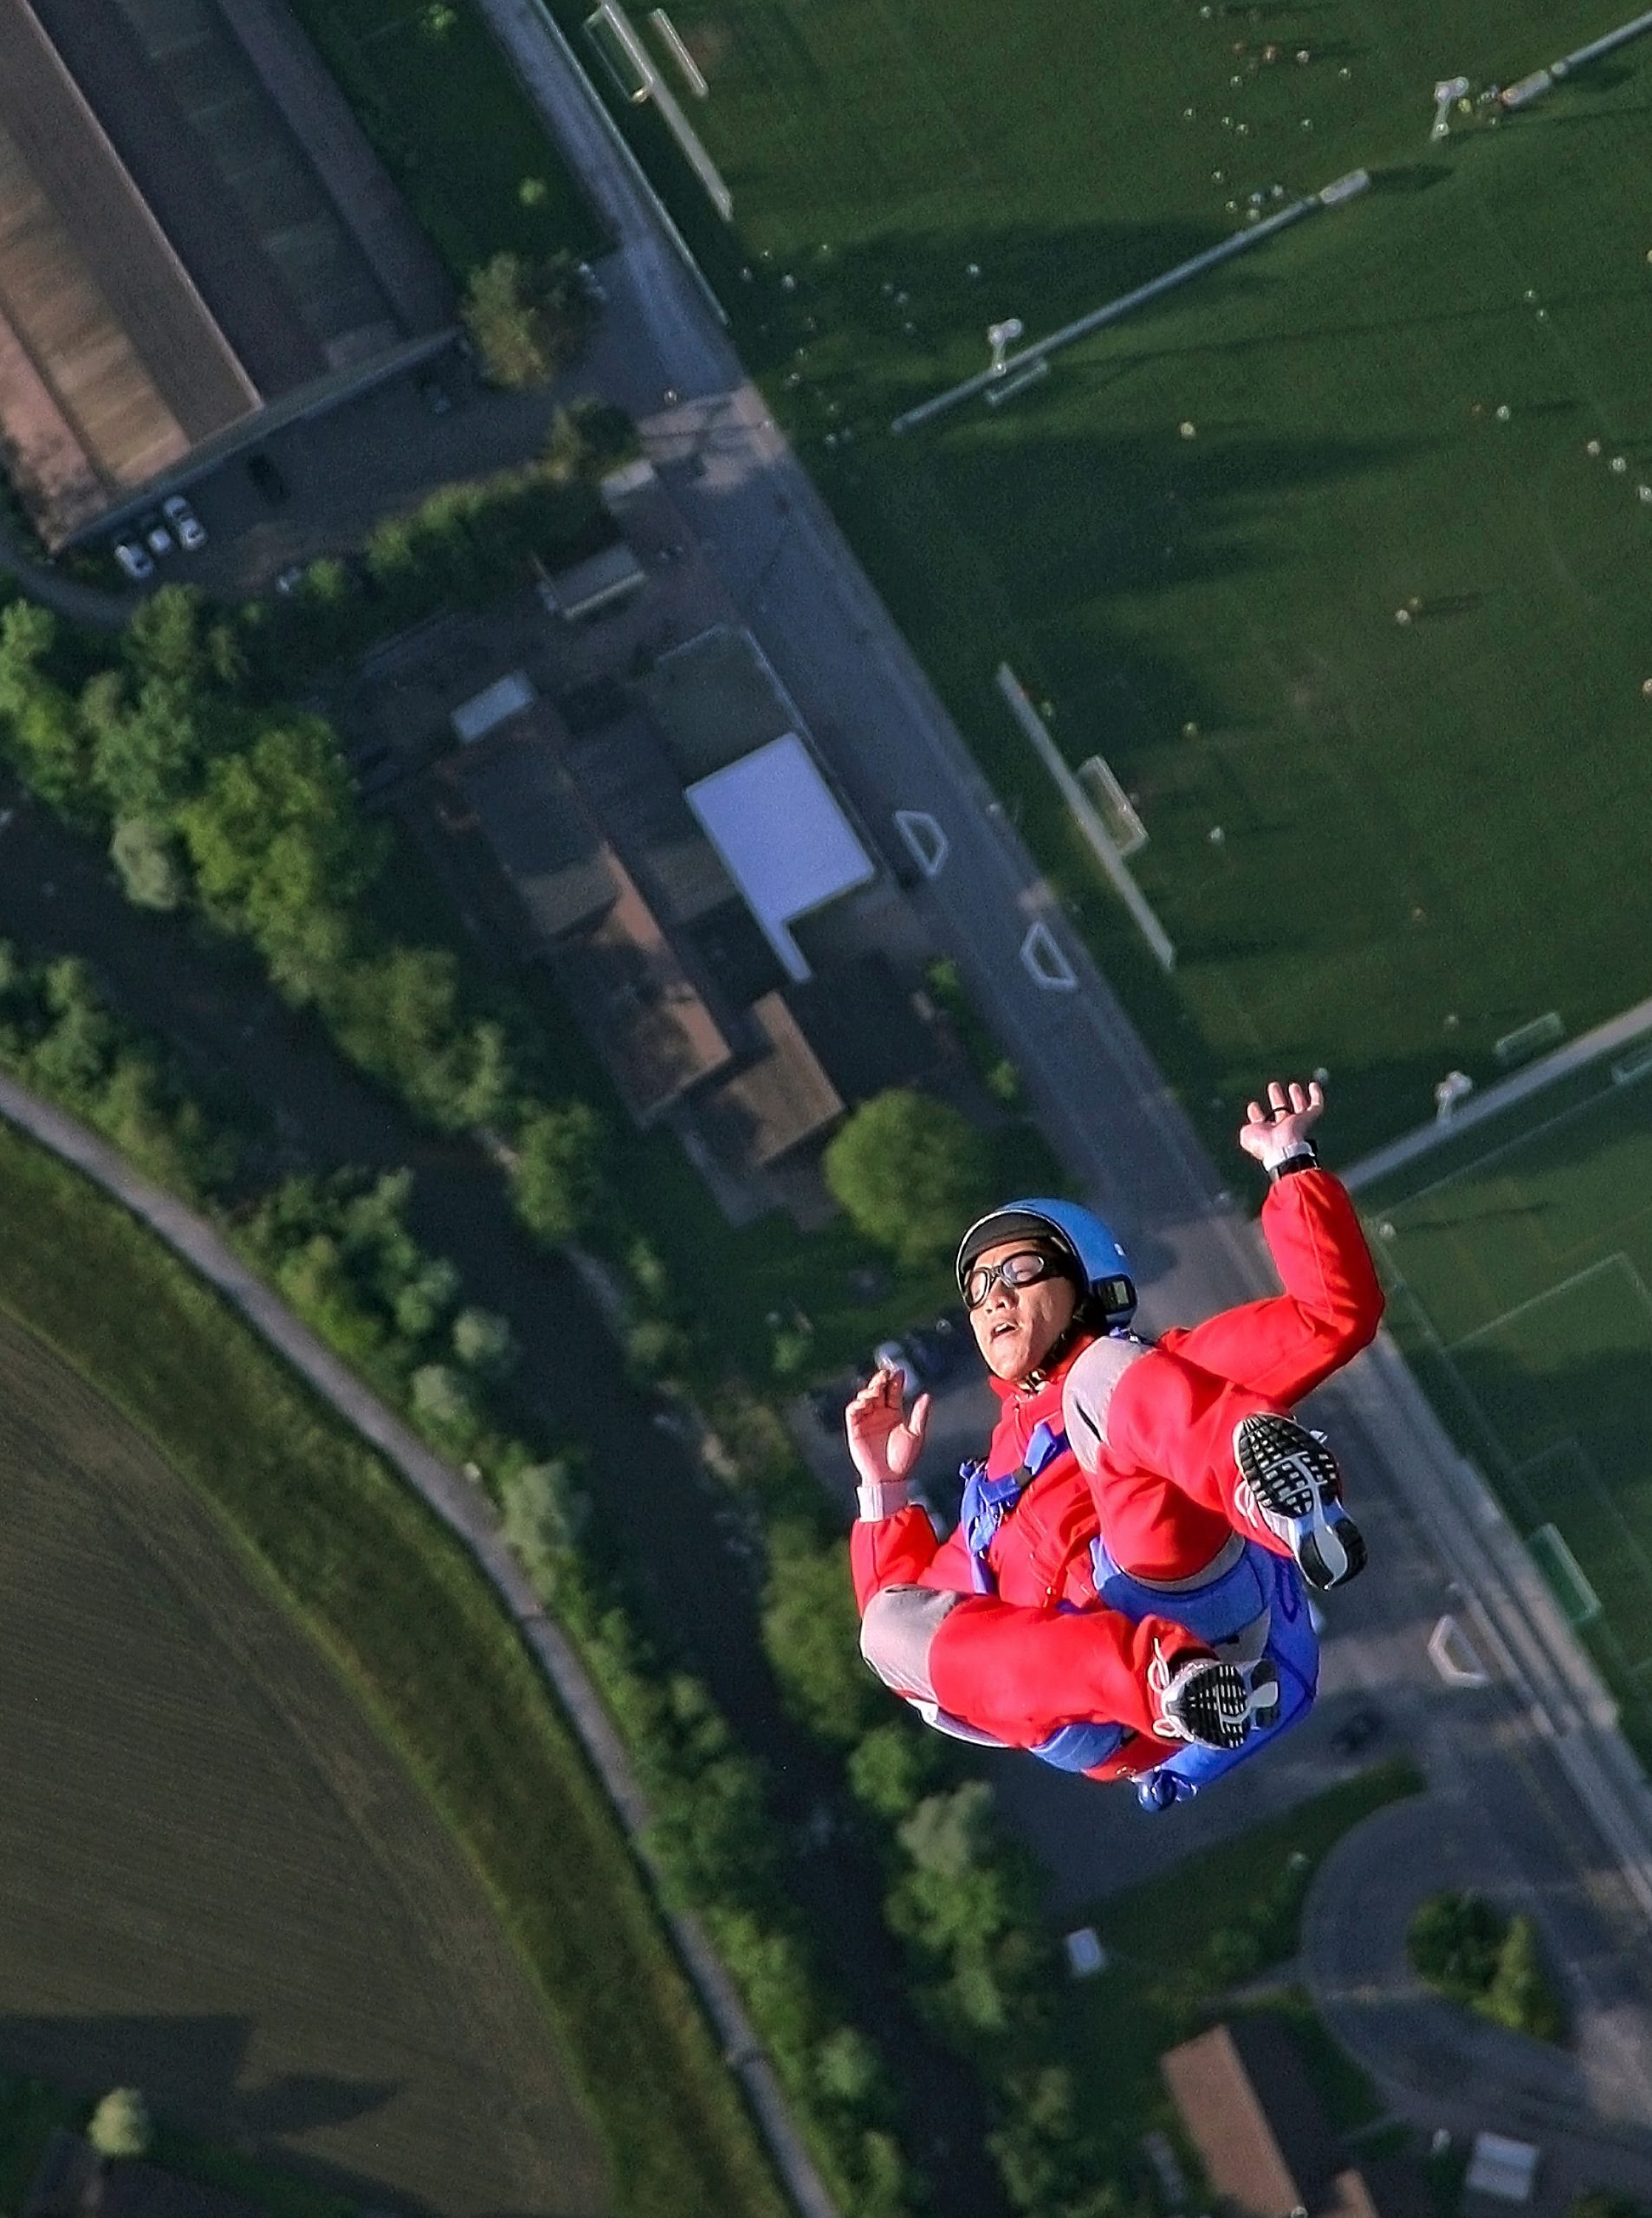 A man jumps out of a plane with a parachute. Photo by Ricardo Gomez on Unsplash.